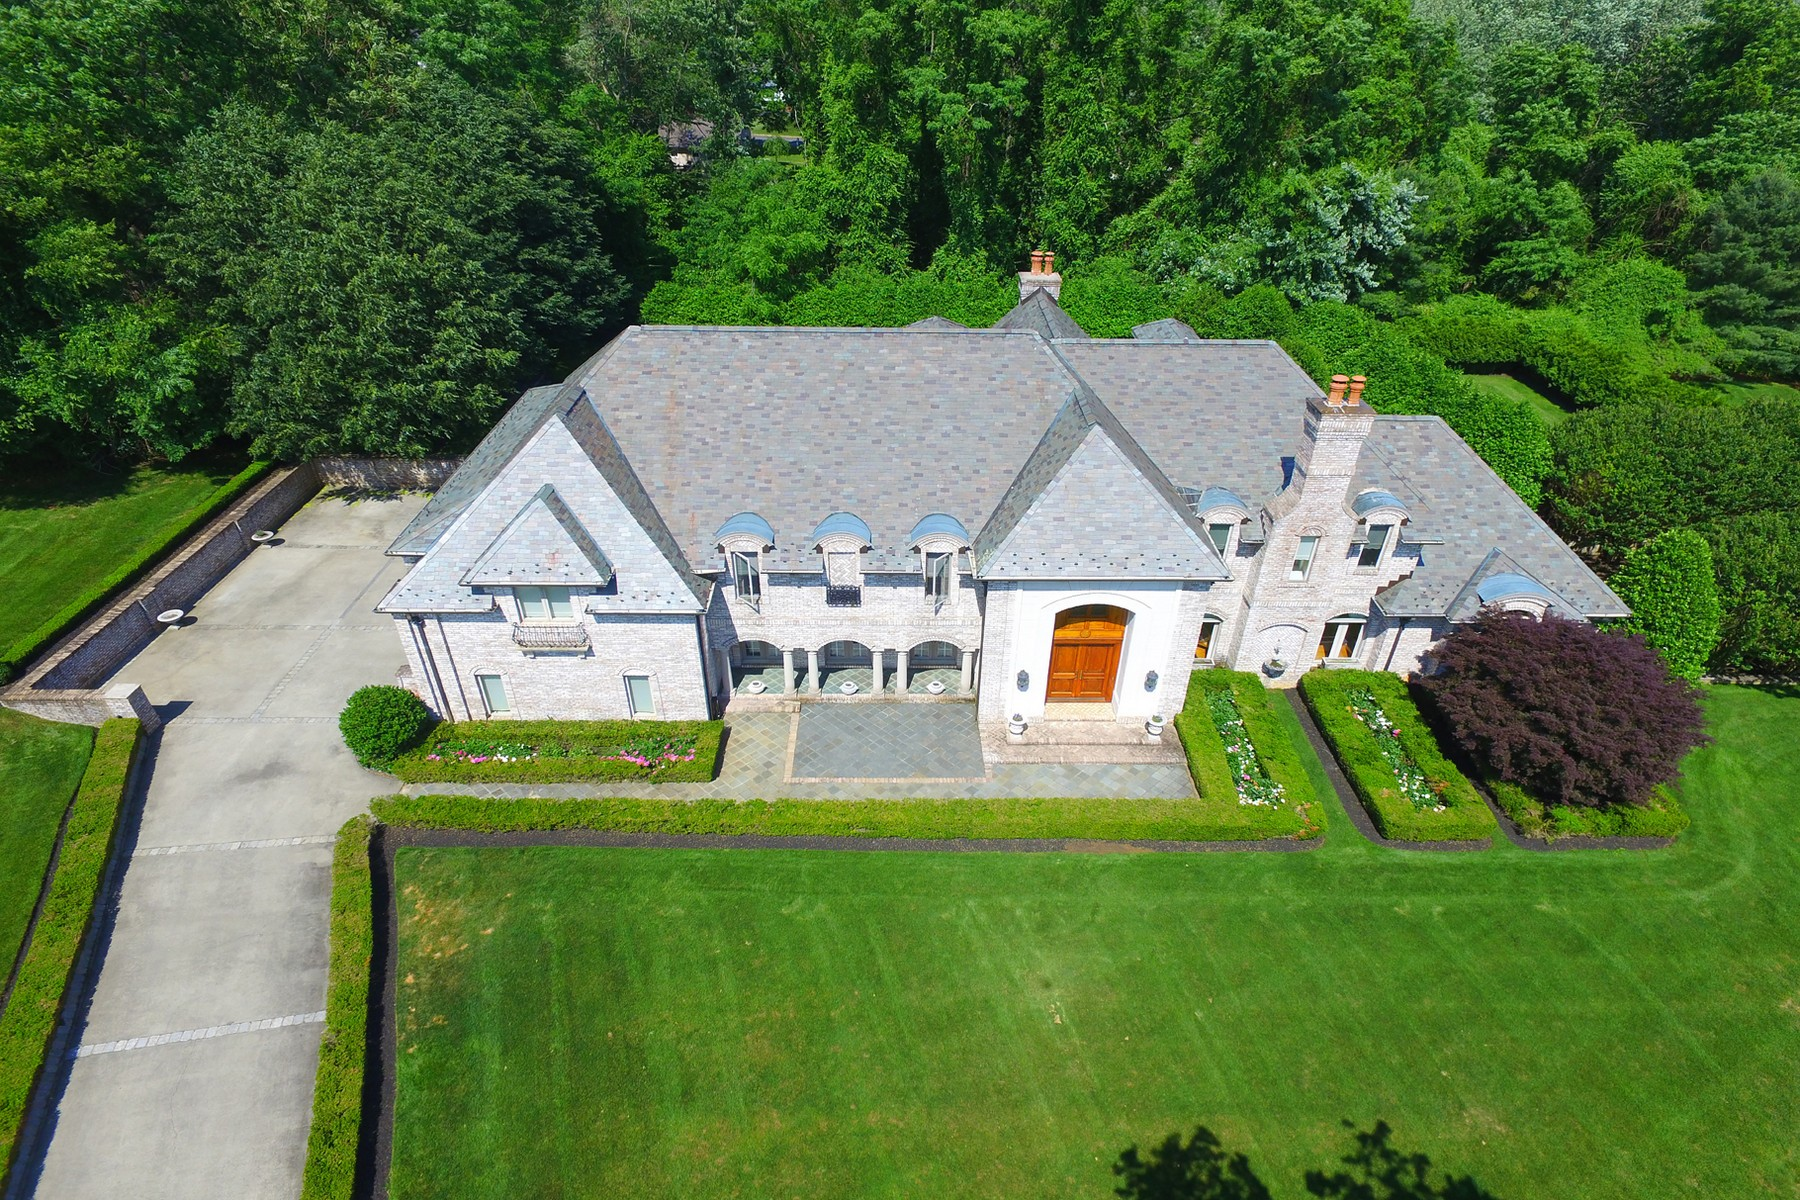 Maison unifamiliale pour l Vente à French Country Manor 14 Brandywine Ln Colts Neck, New Jersey, 07722 États-Unis